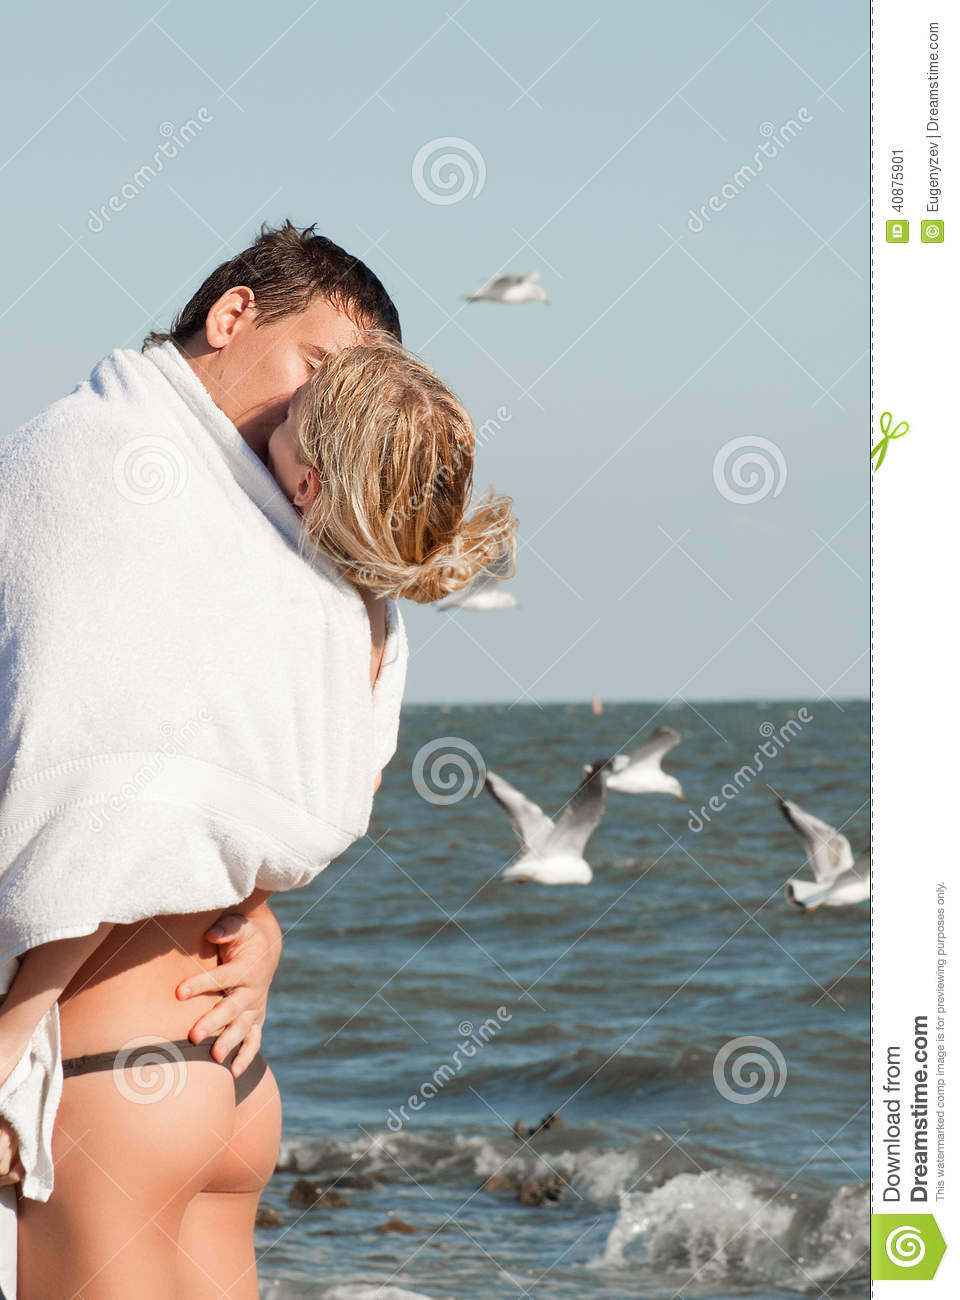 Two young people in love stock image. Image of birds